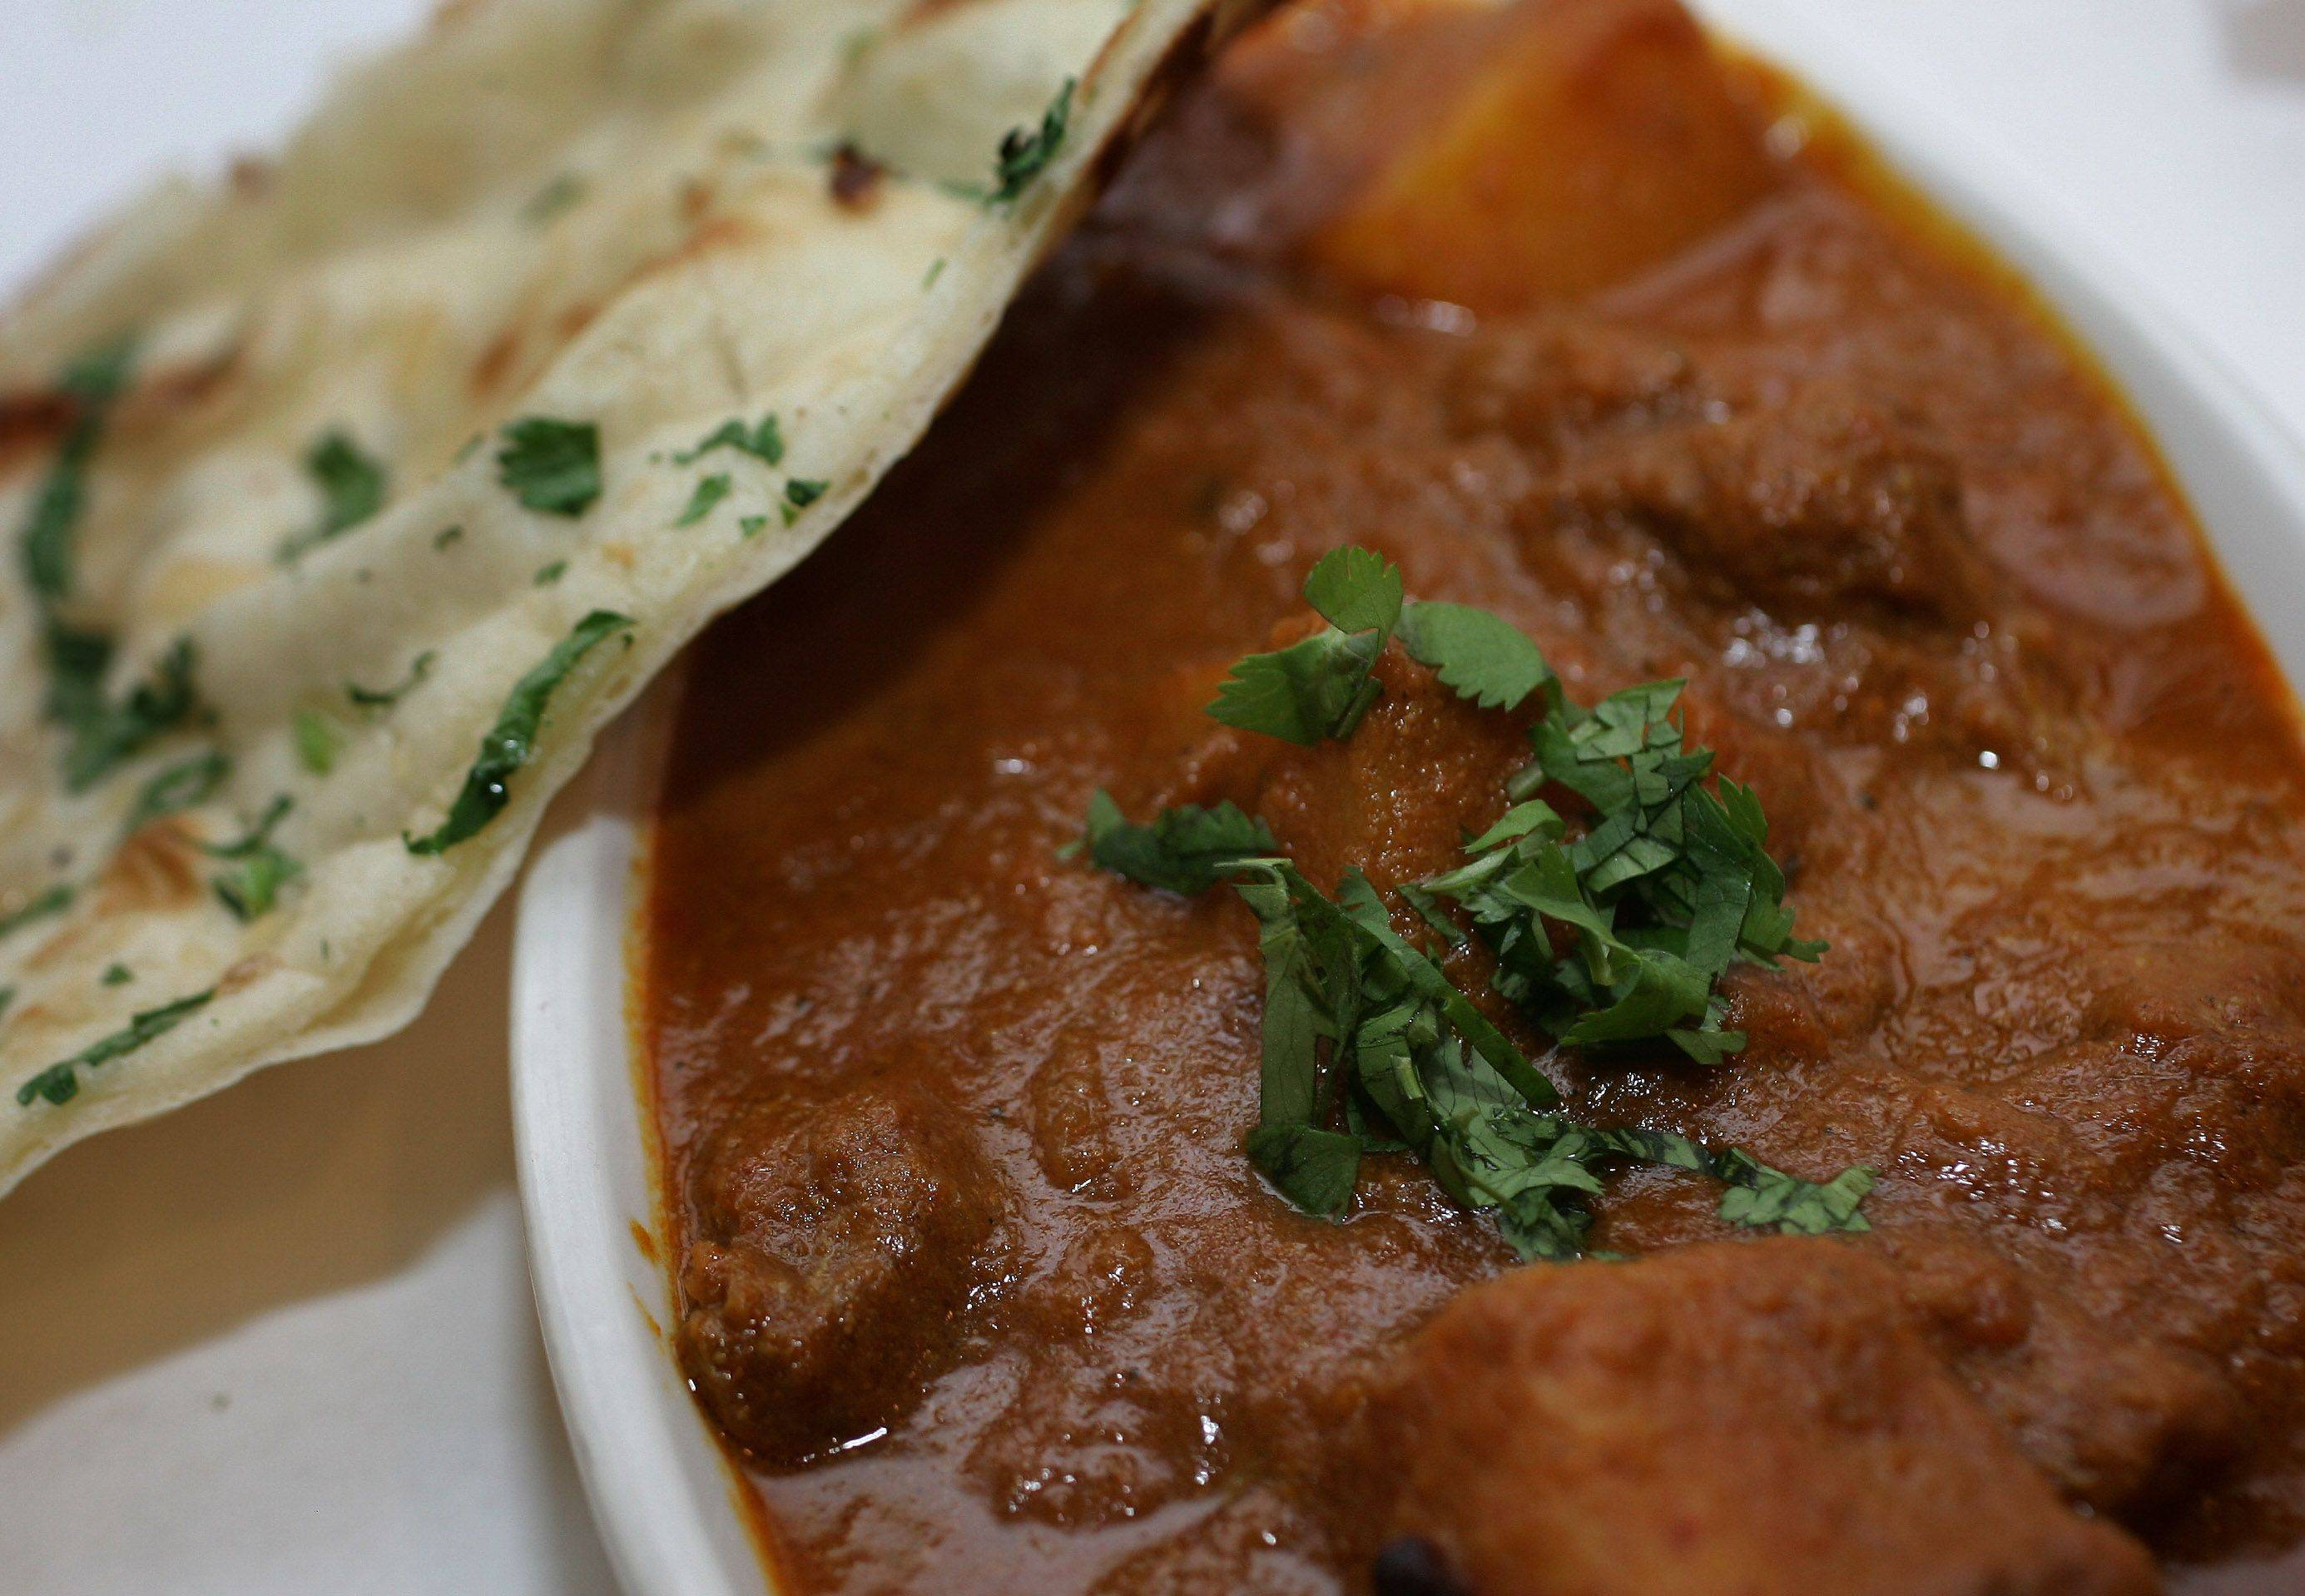 Lamb vindaloo, which is lamb in a Goan-style hot curry sauce, comes with a side of garlic naan at the Himalayan Restaurant in Gurnee.